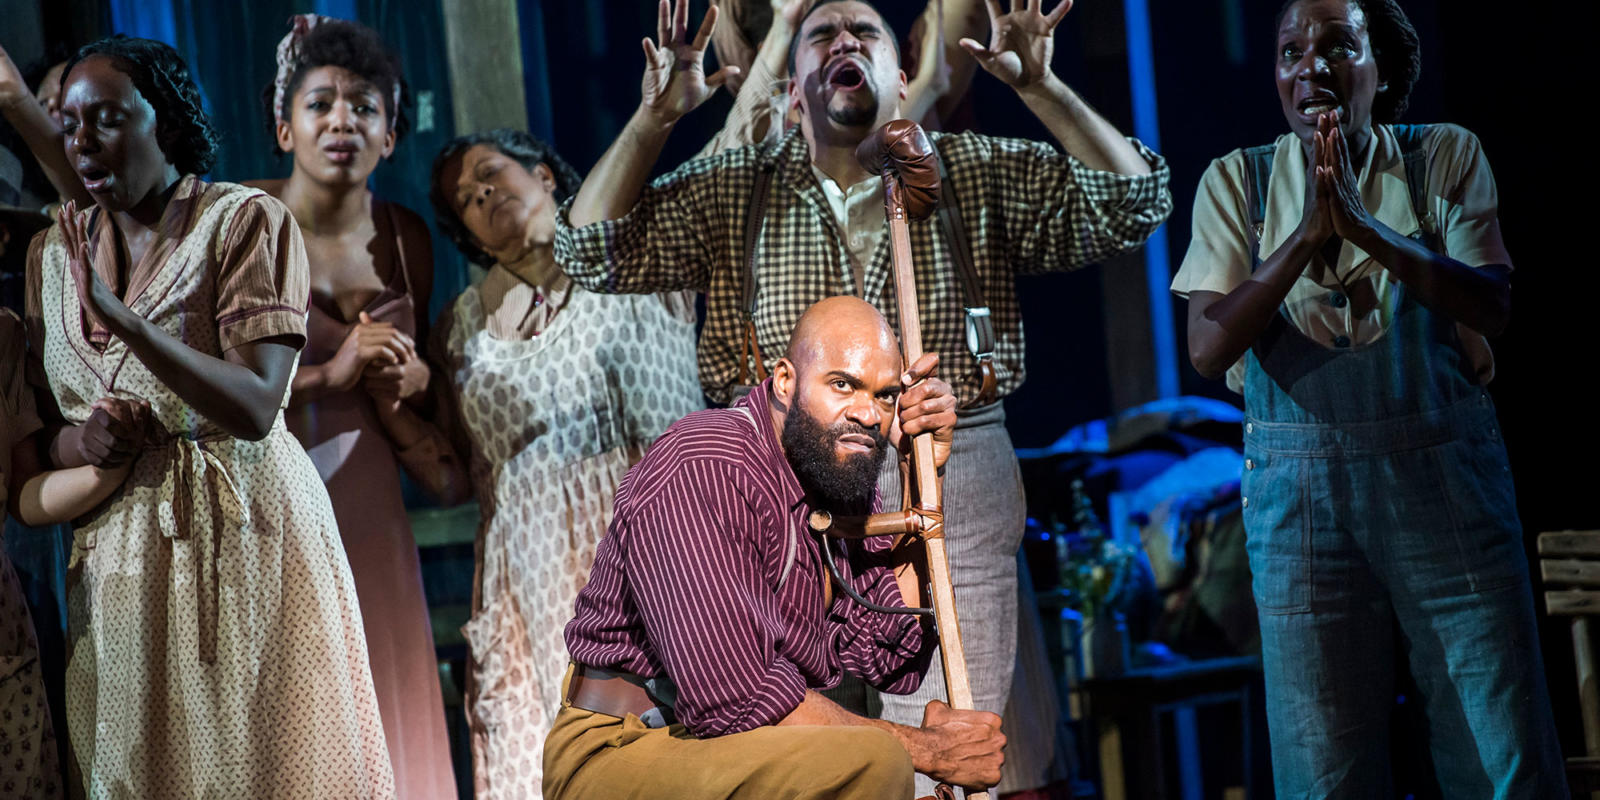 ENO Porgy and Bess: Eric Greene and Chorus members (c) Tristram Kenton